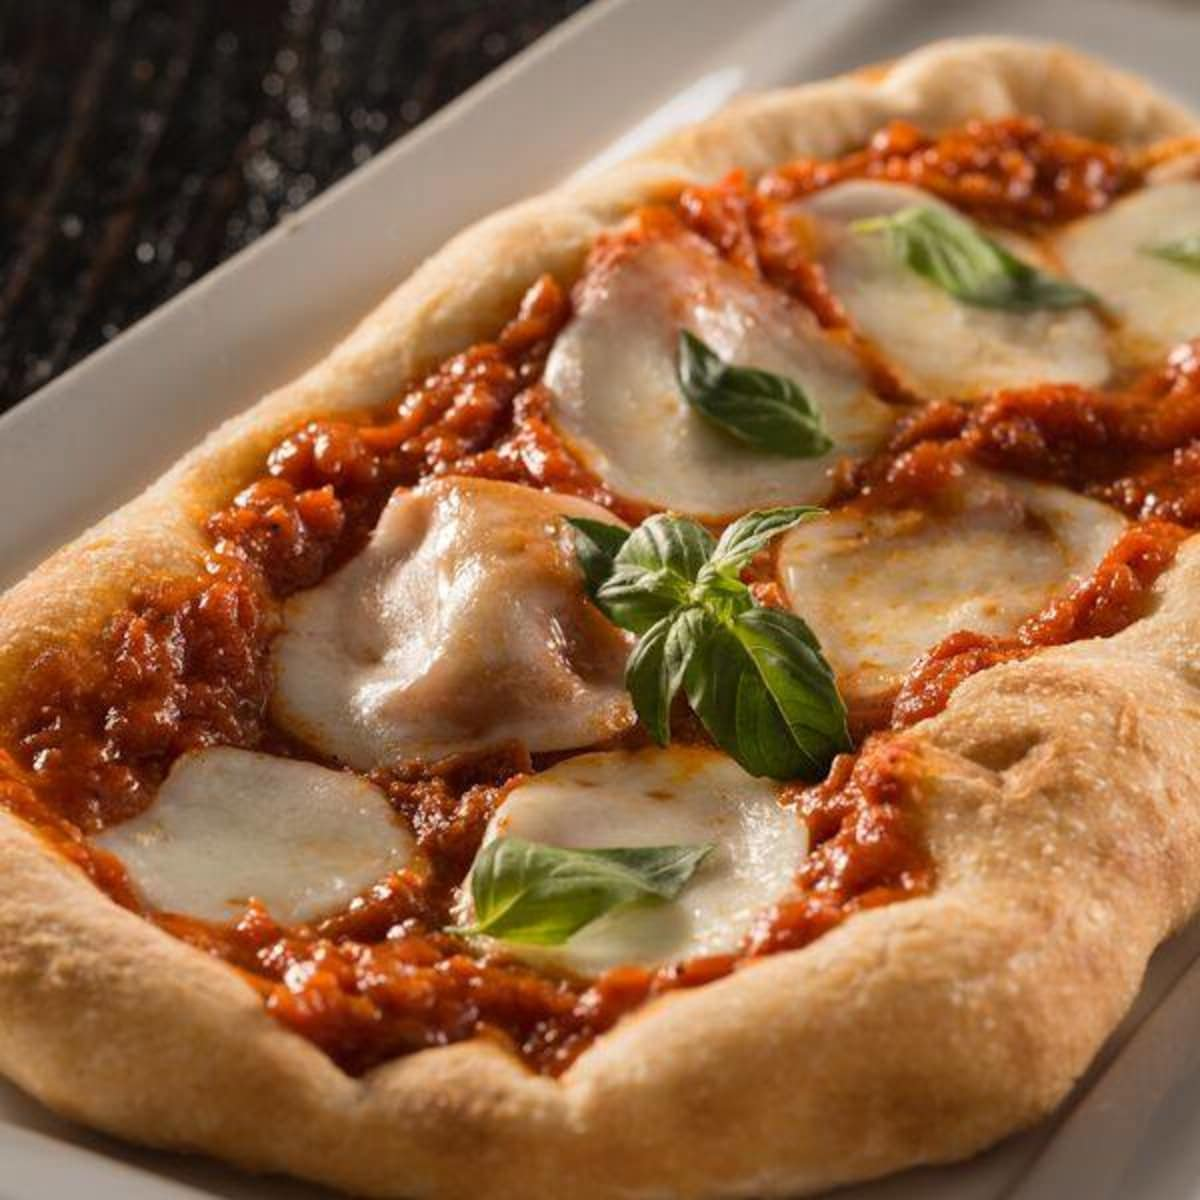 The Tuck Room margherita pizza